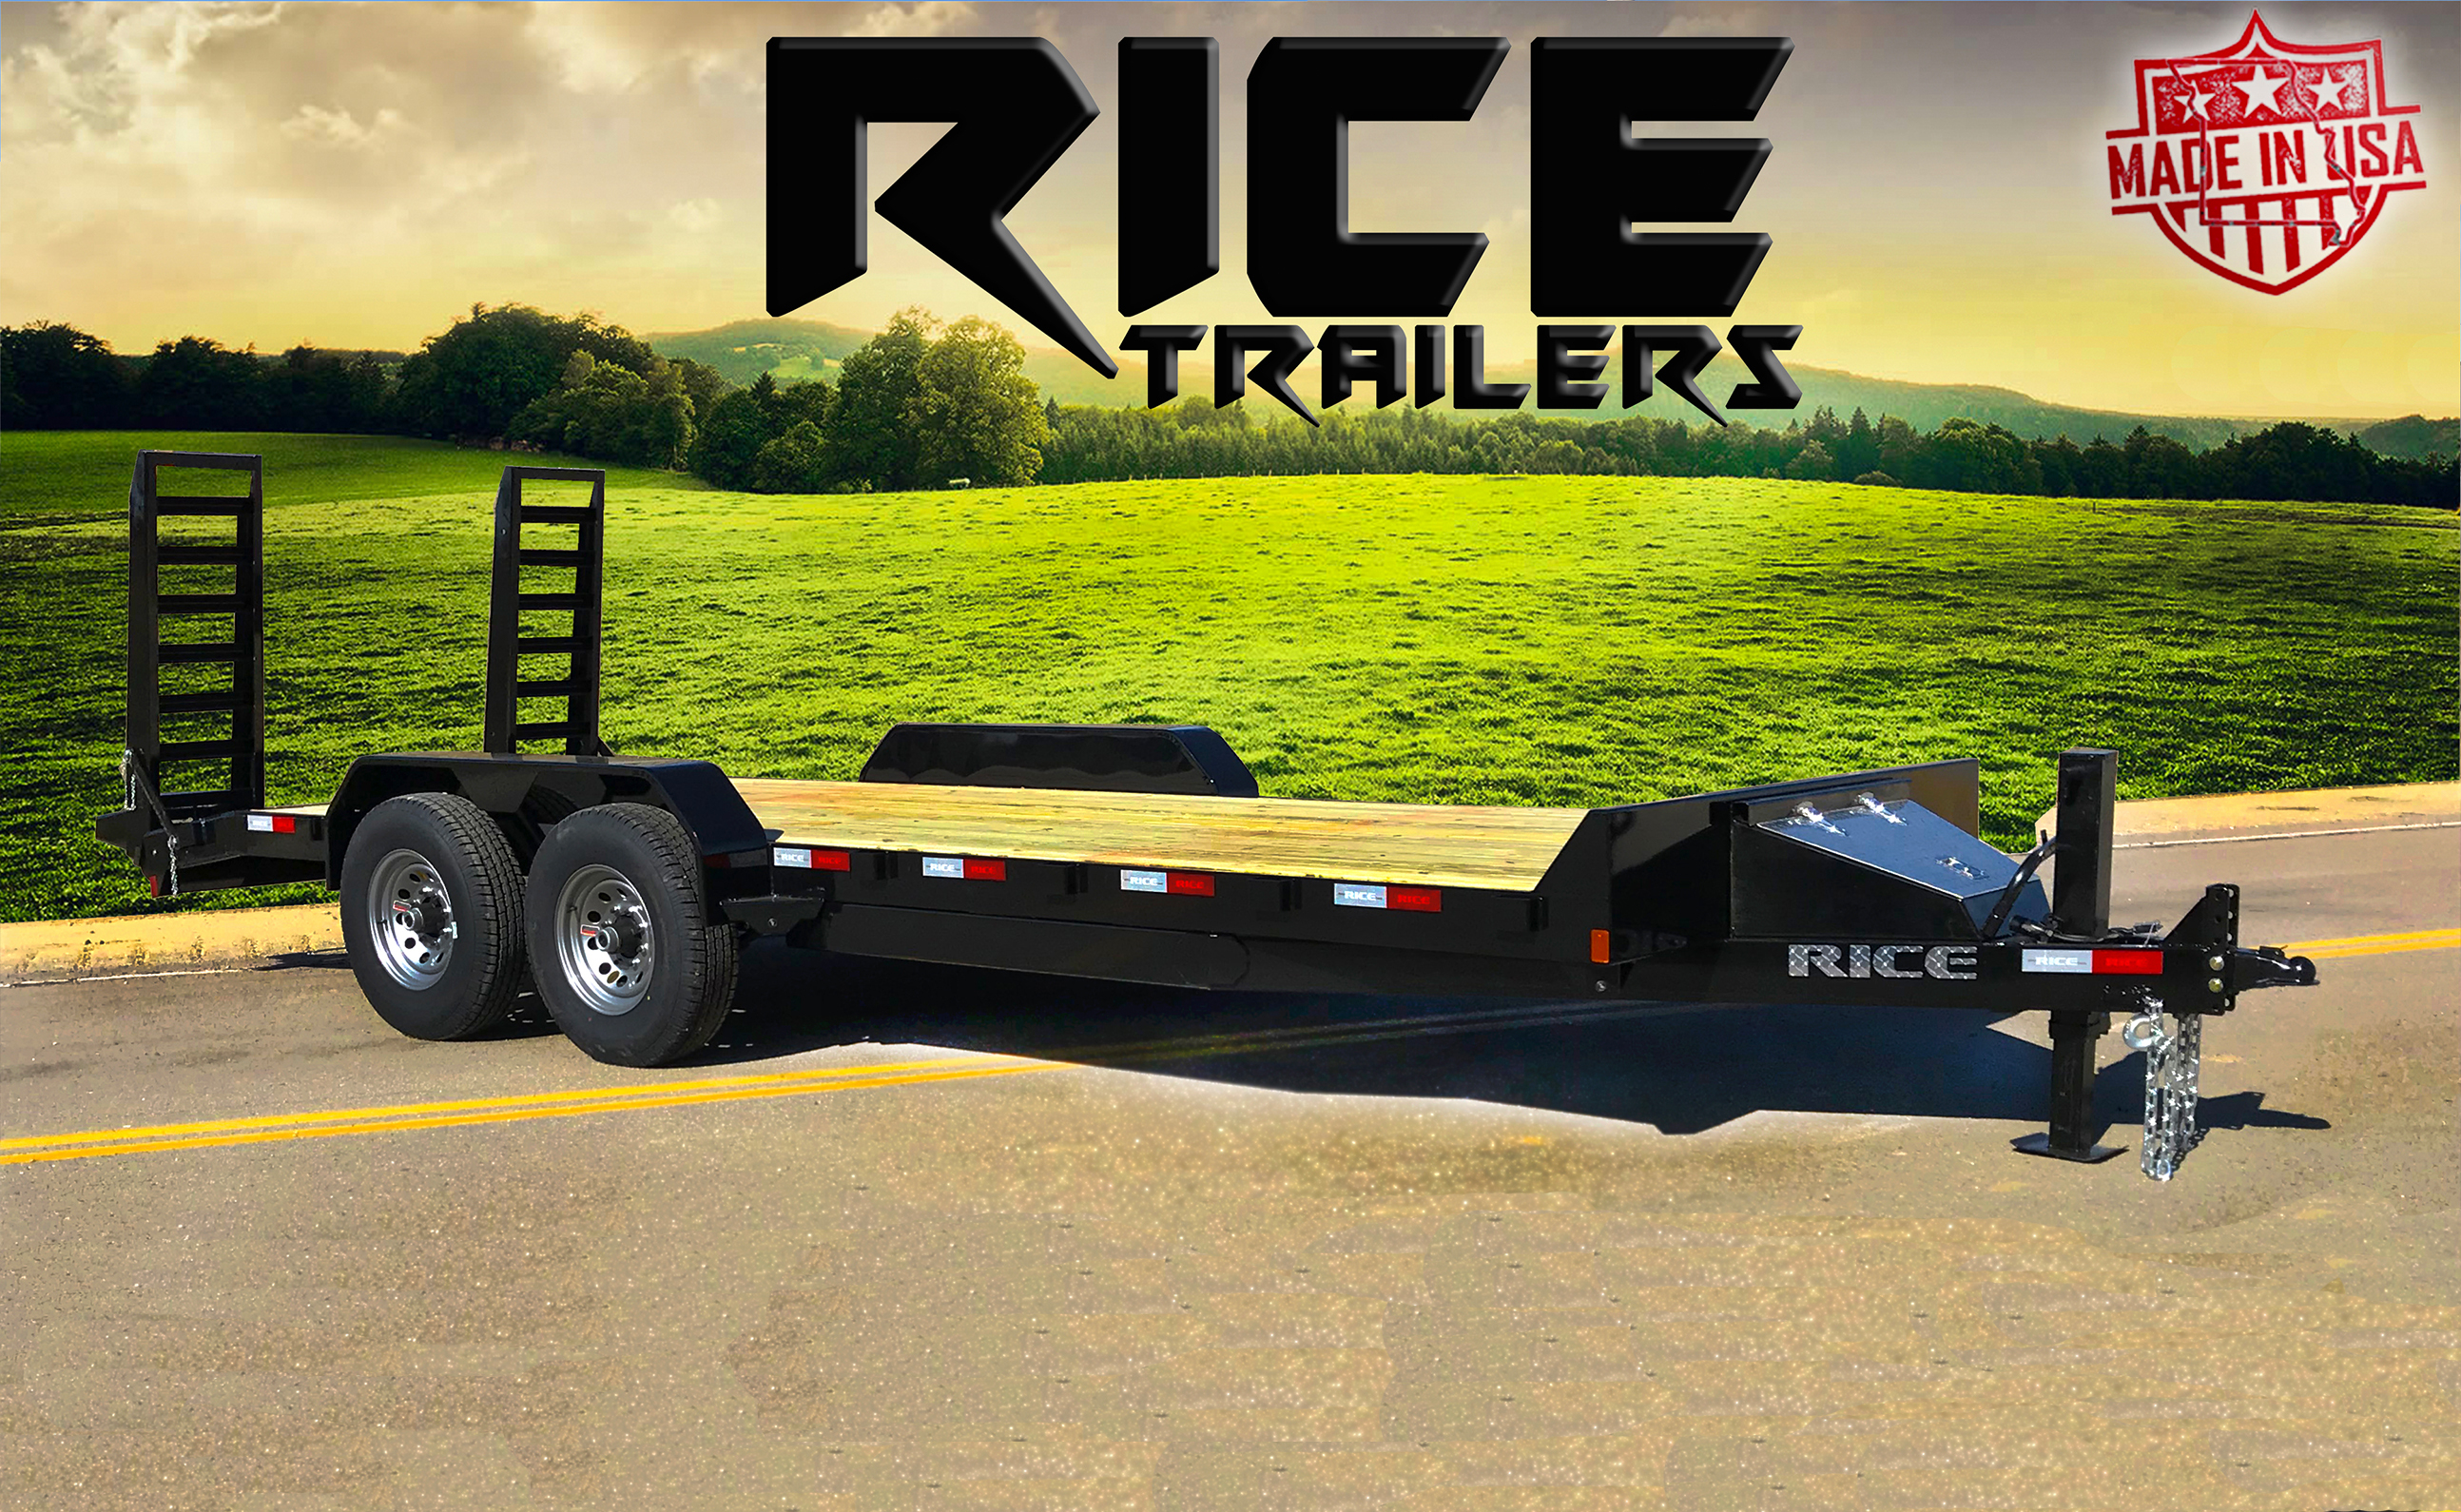 Rice Trailers Fully Powder Coated Built In Usa - Quality Cargo Trailer Wiring Diagram